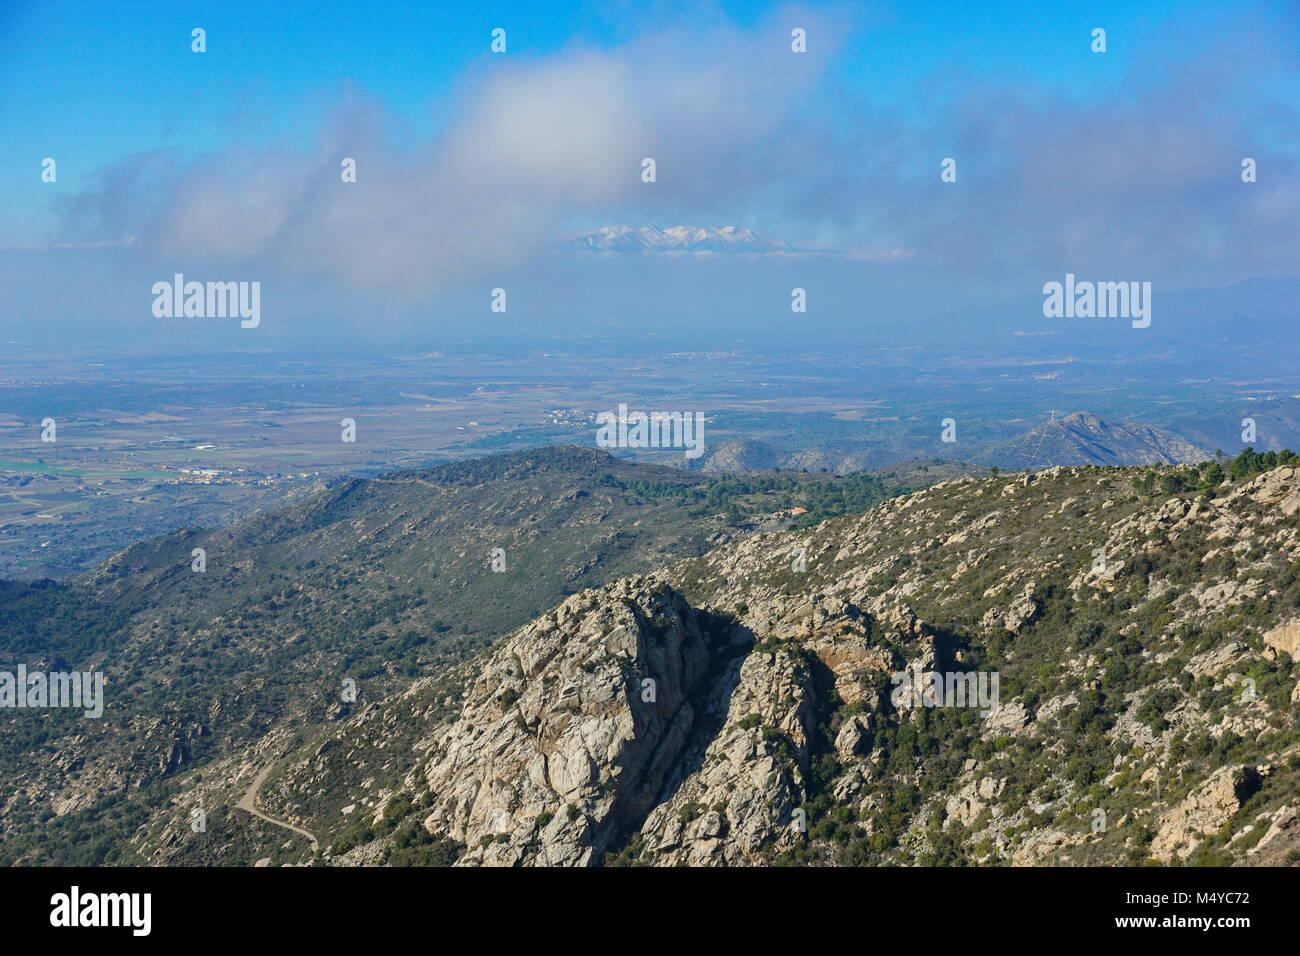 Landscape from the top of Verdera mountain in Spain with the Canigou mountain appears in the sky between clouds, - Stock Image